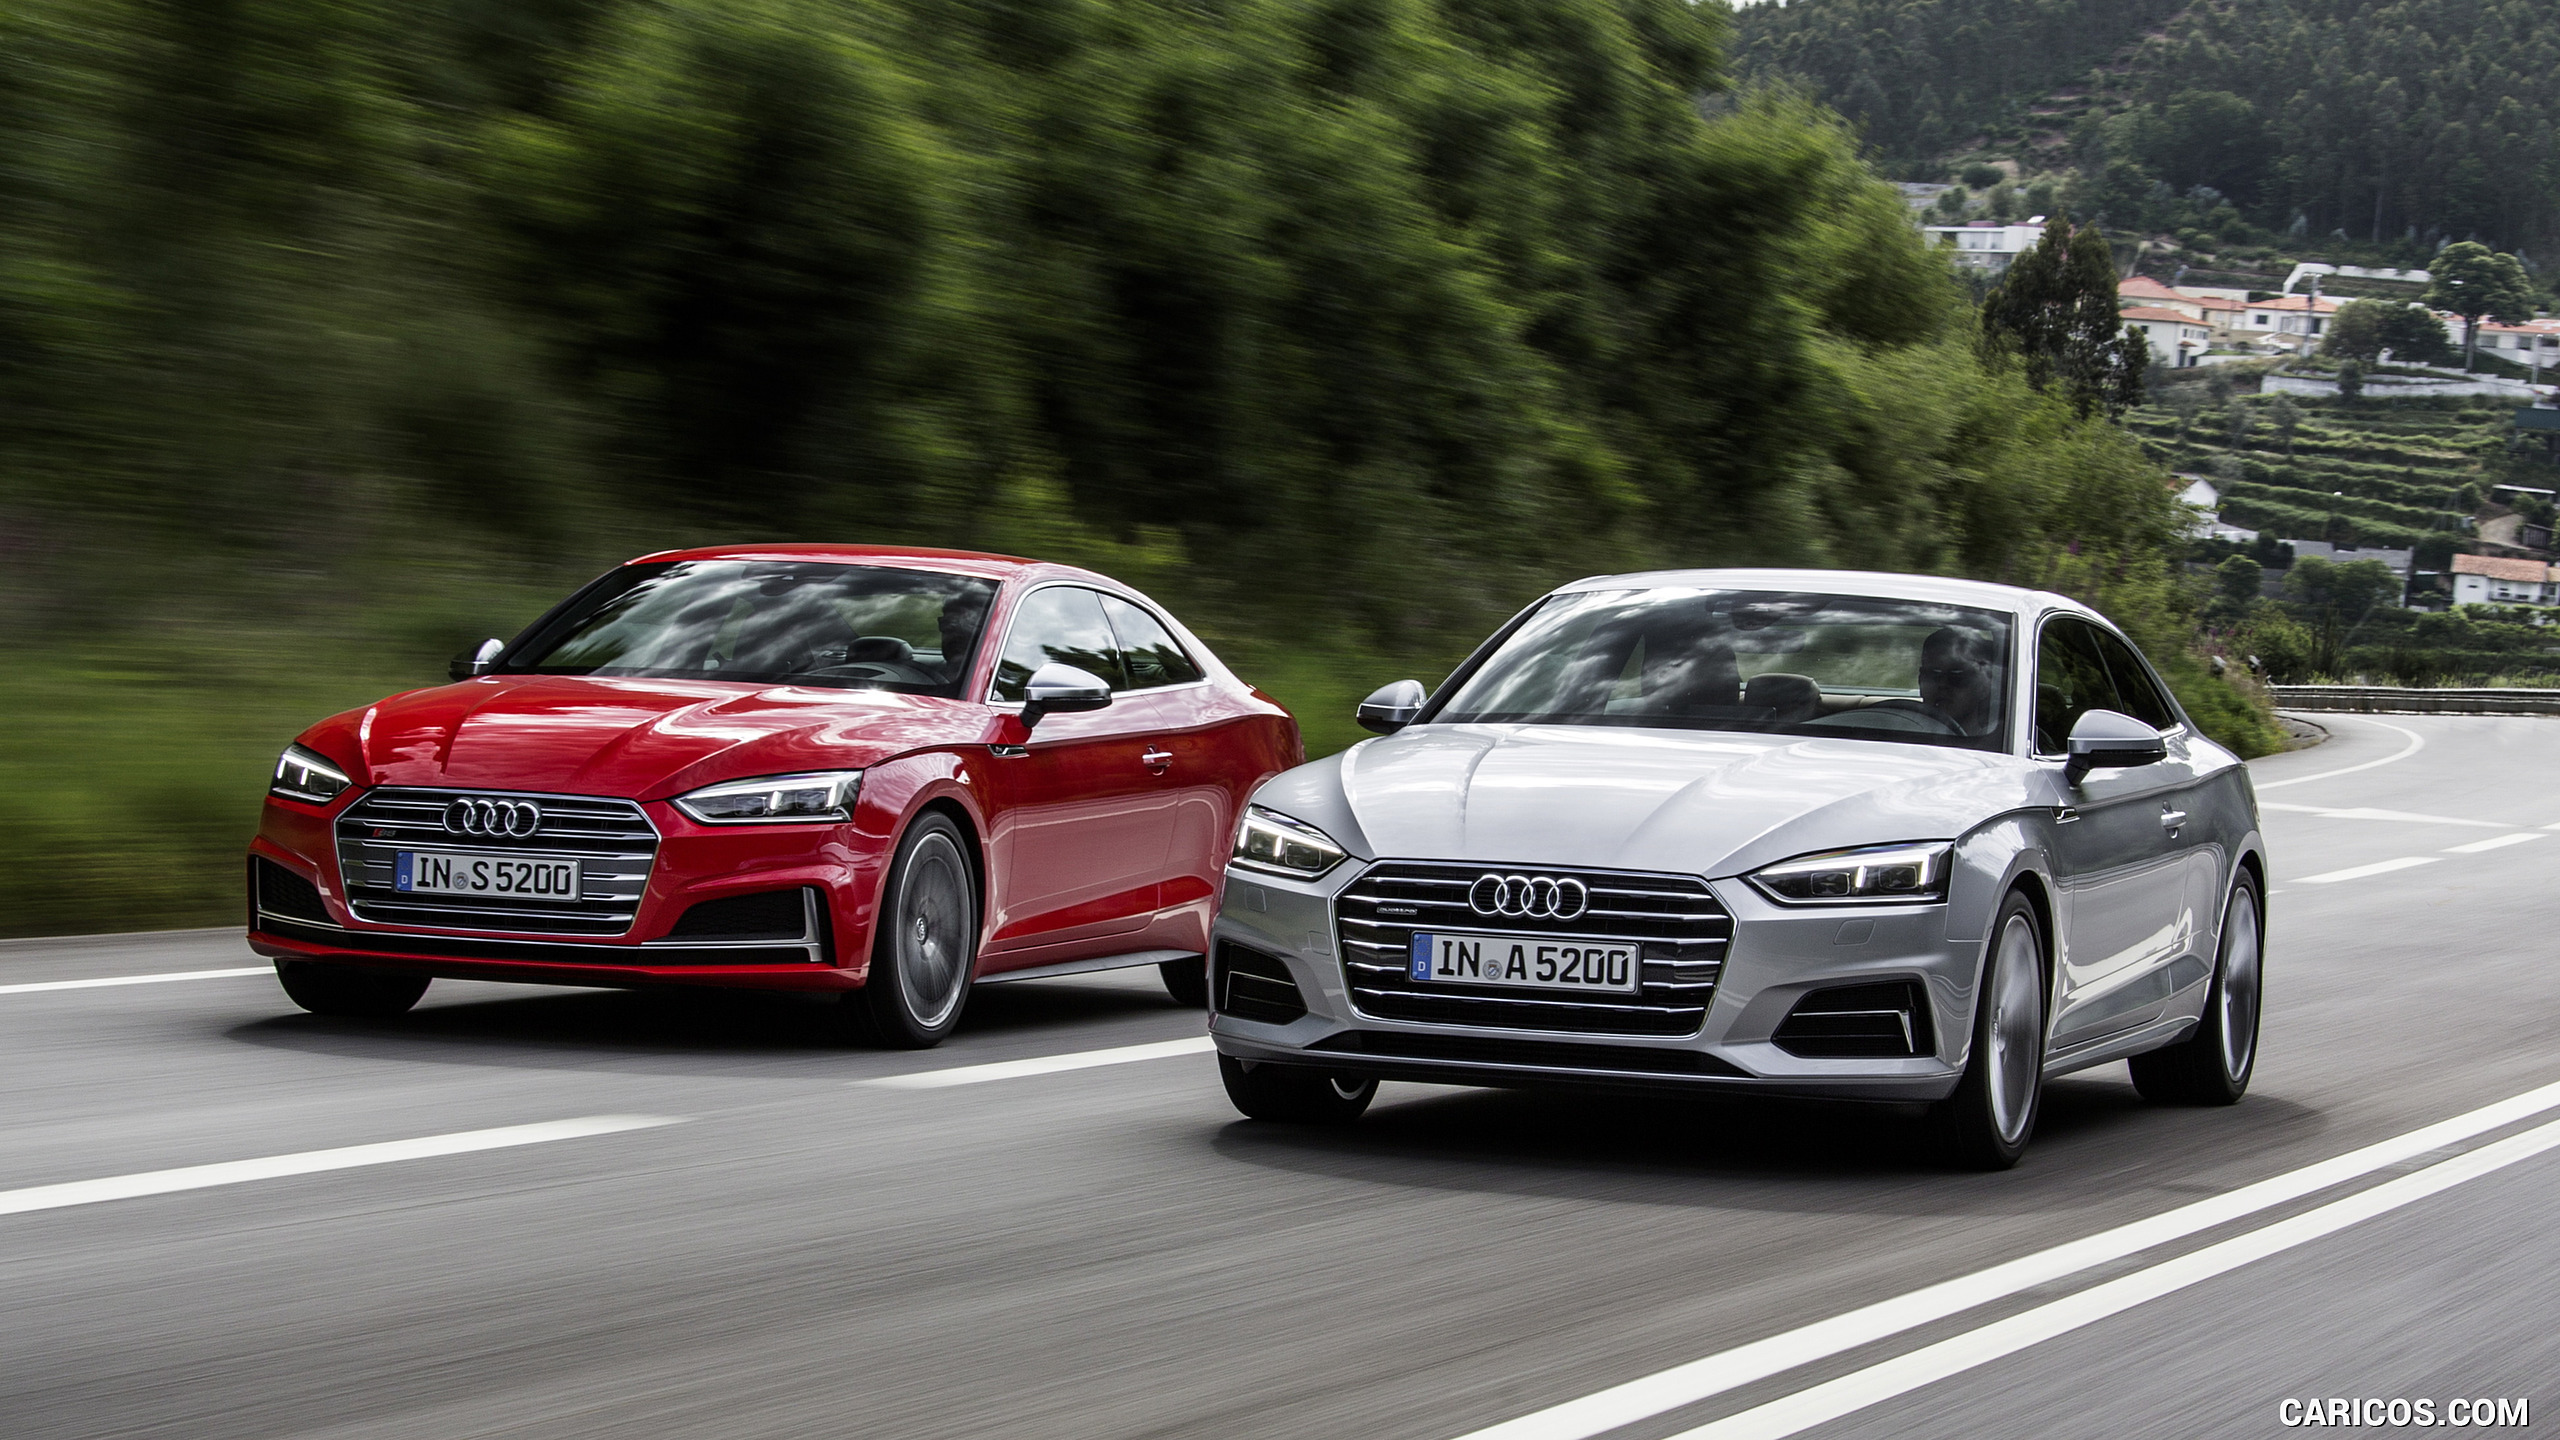 2560x1440 - Audi A5 Wallpapers 1